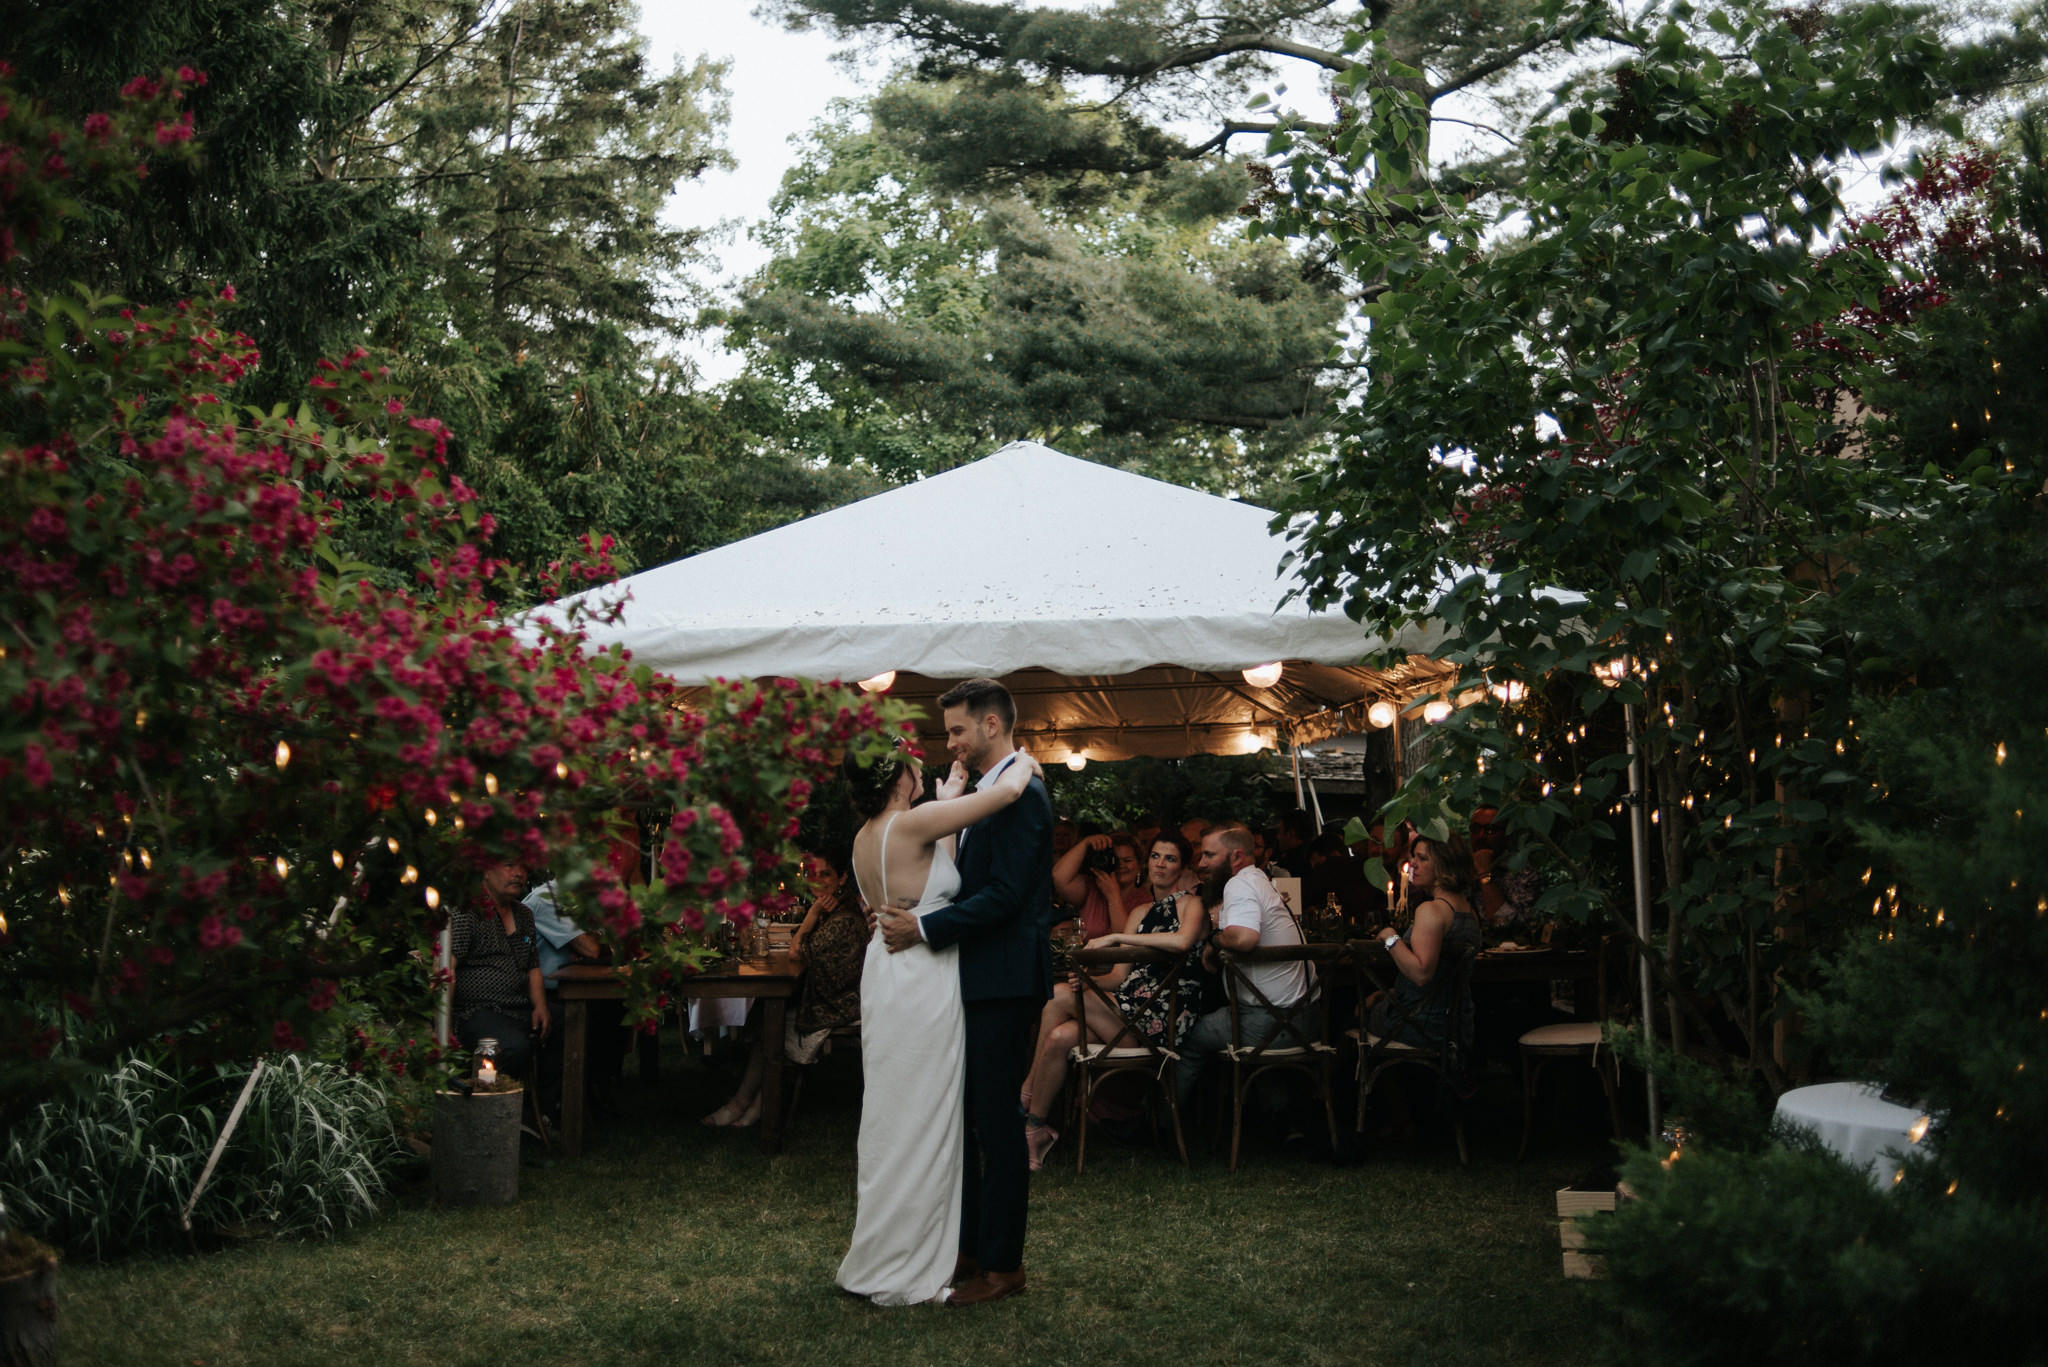 Intimate Backyard Wedding in Toronto